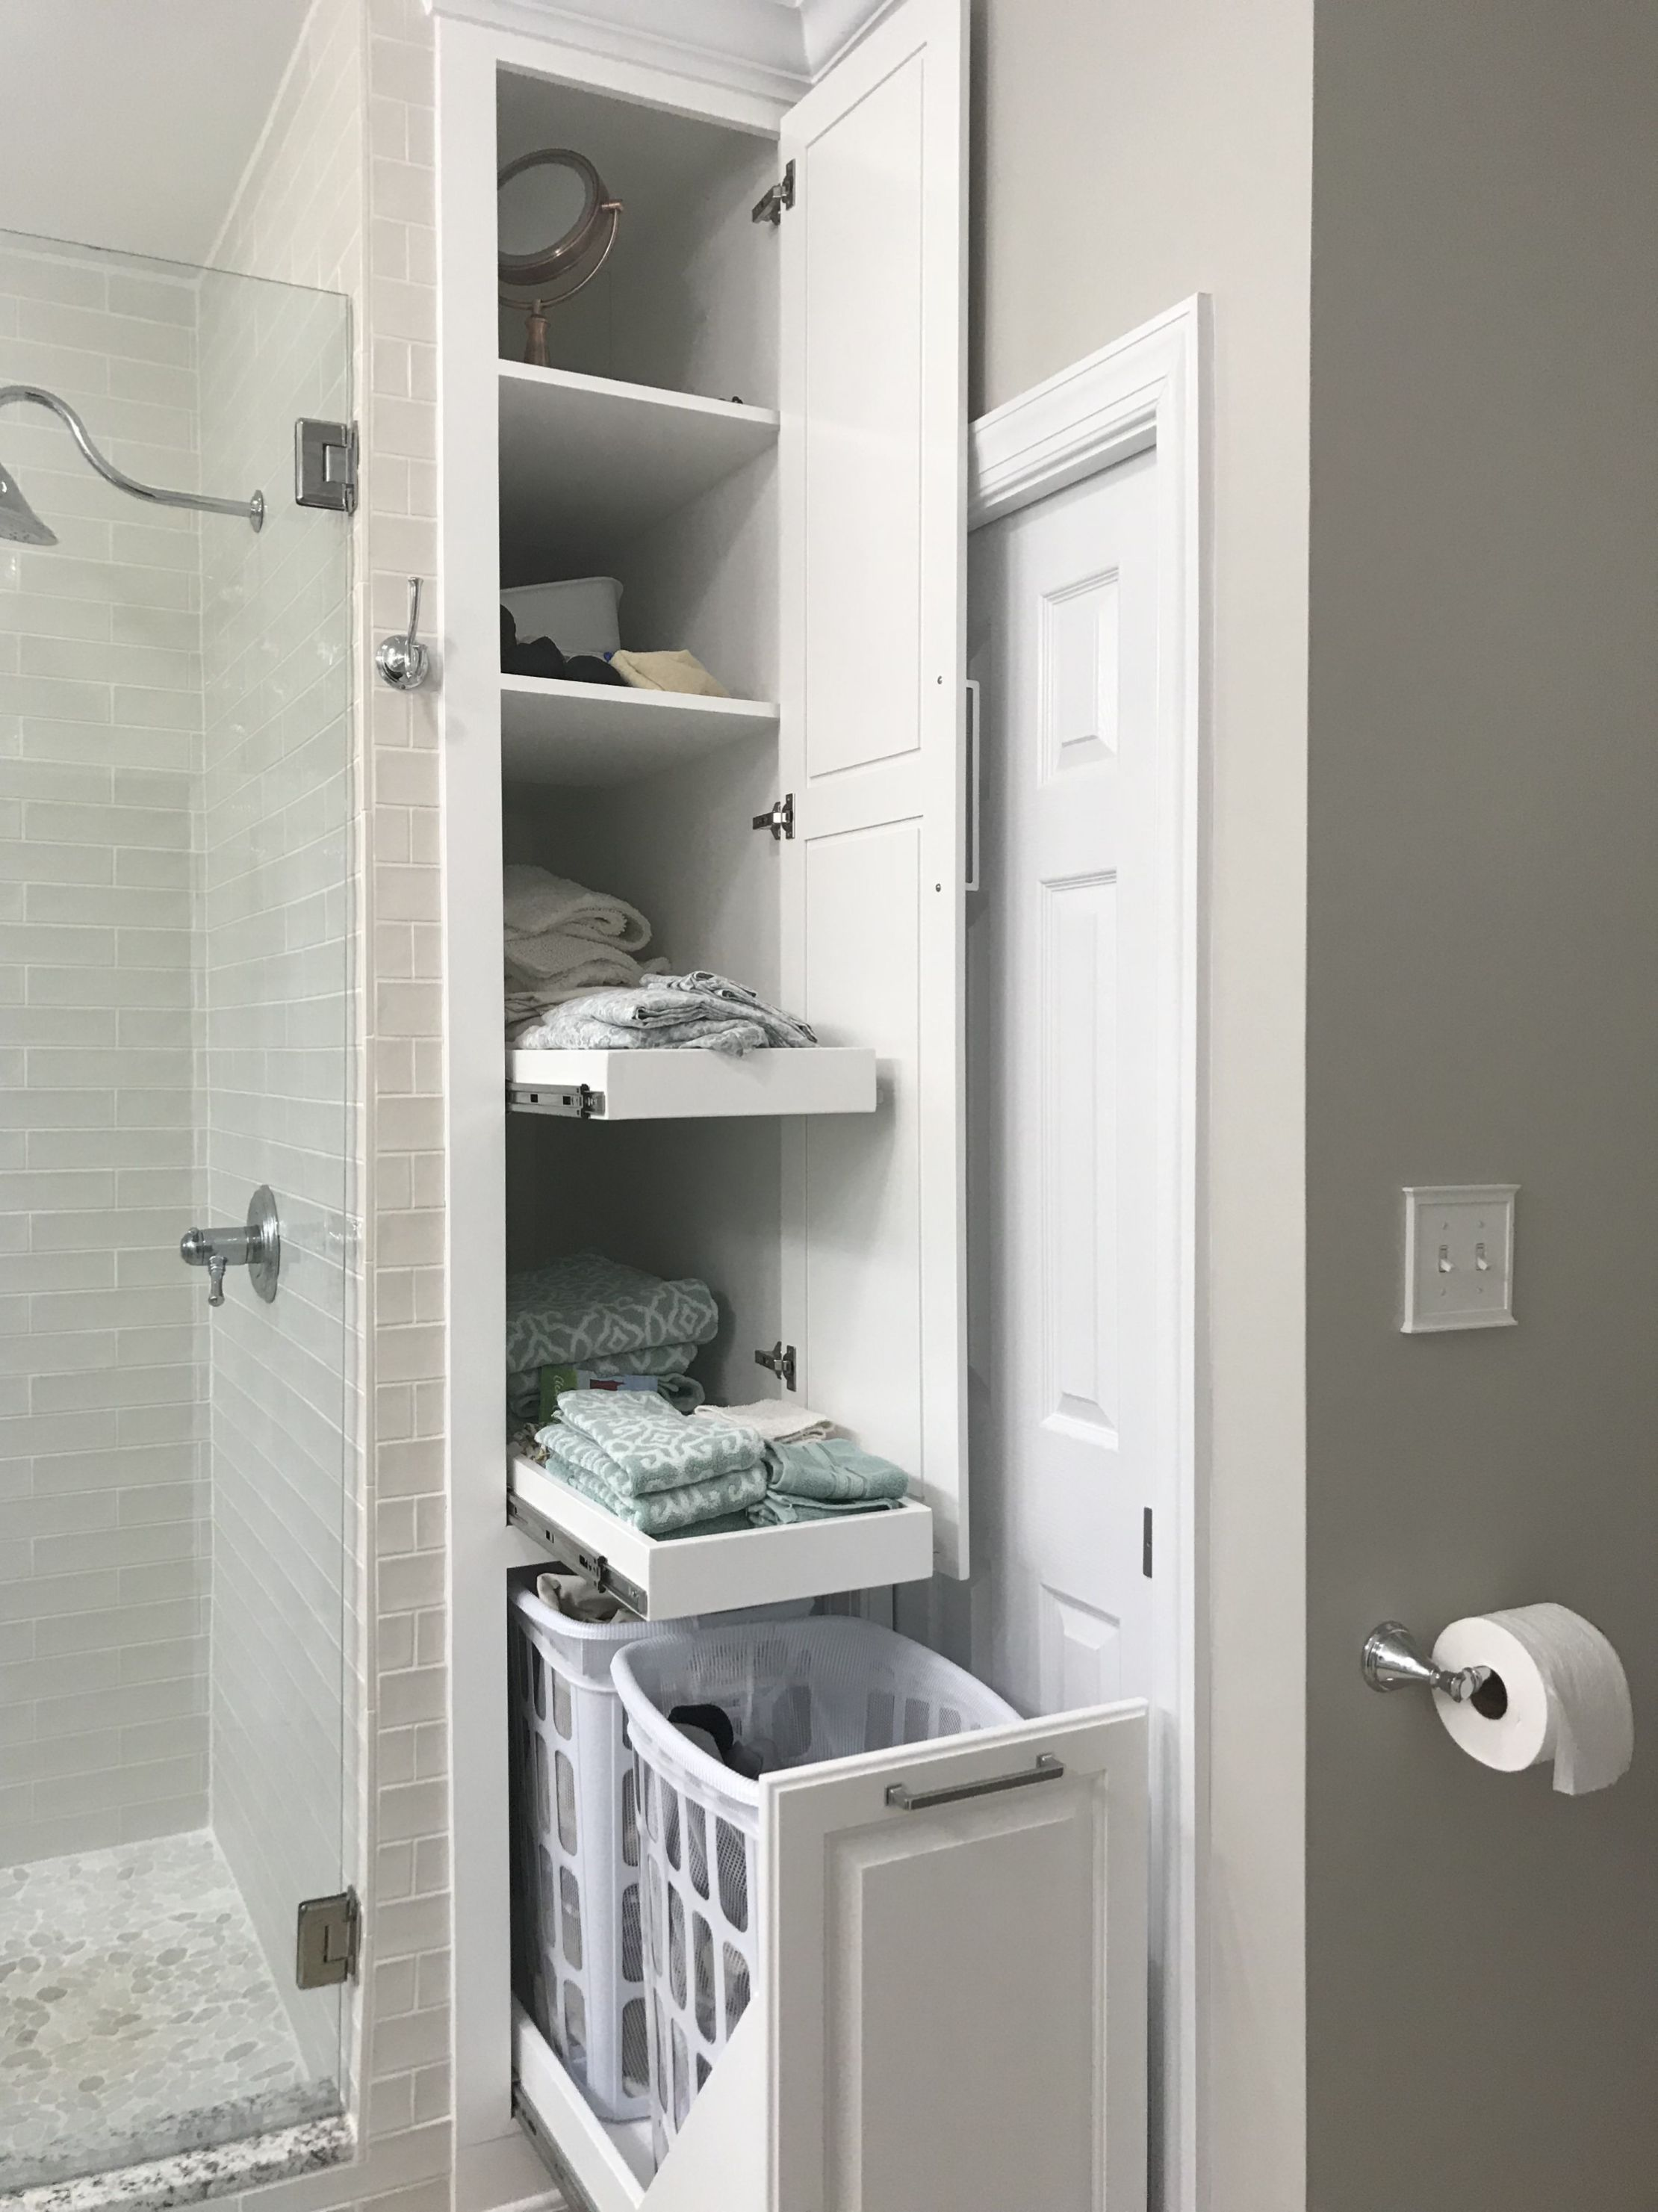 55 Bathroom Storage Solutions For Small Space Bathroom Storage Solutions Bathroom Remodel Master Small Bathroom